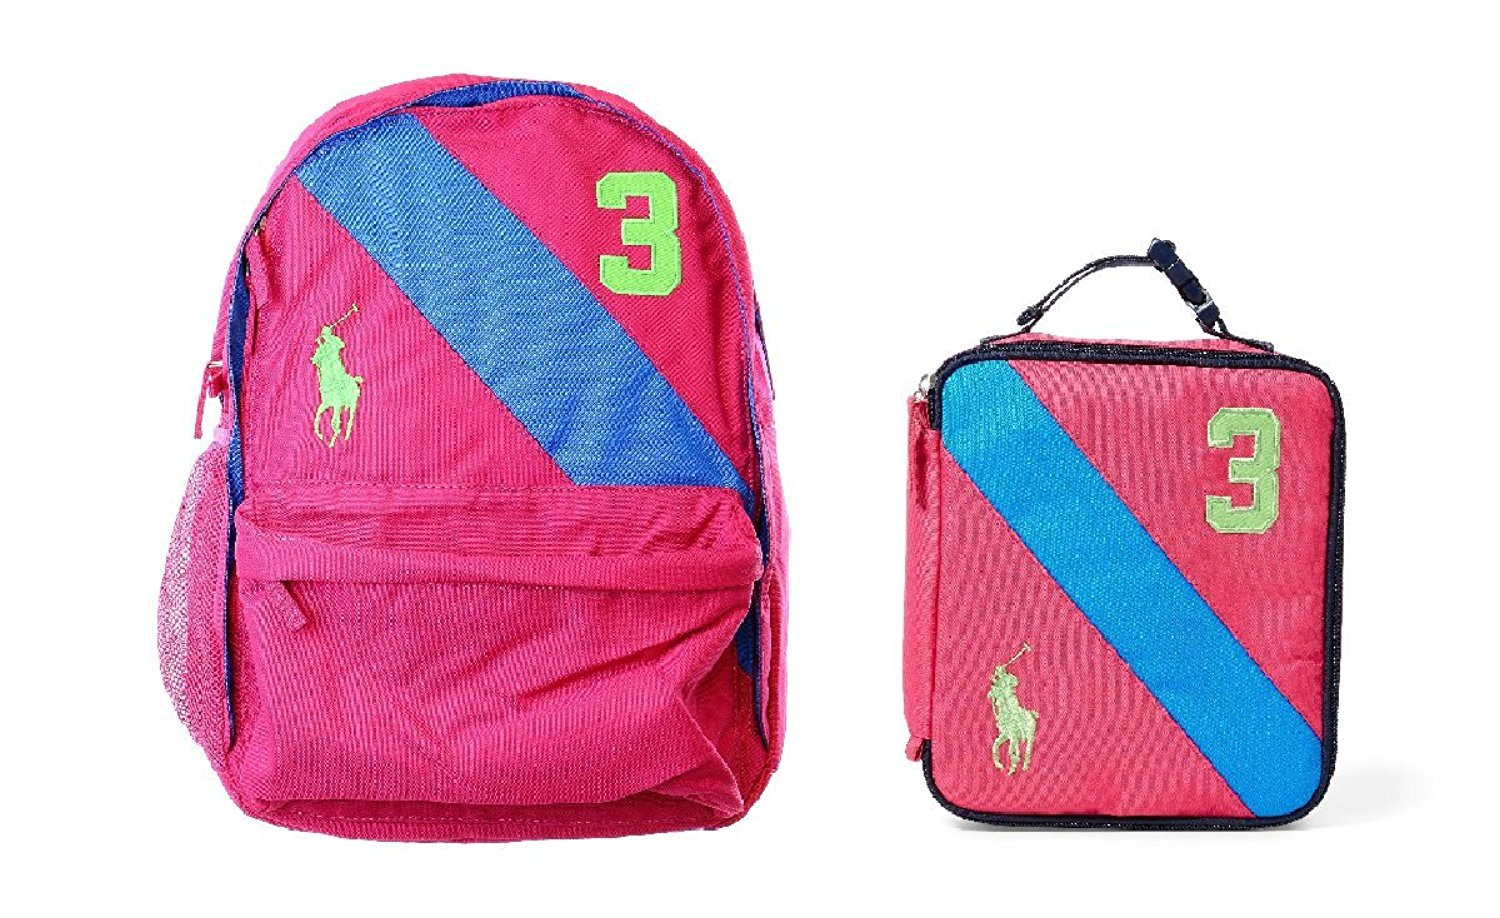 670305e9eff0 Get Quotations · Polo Ralph Lauren Girl s Banner Stripe Large Backpack and  Lunch Box Set